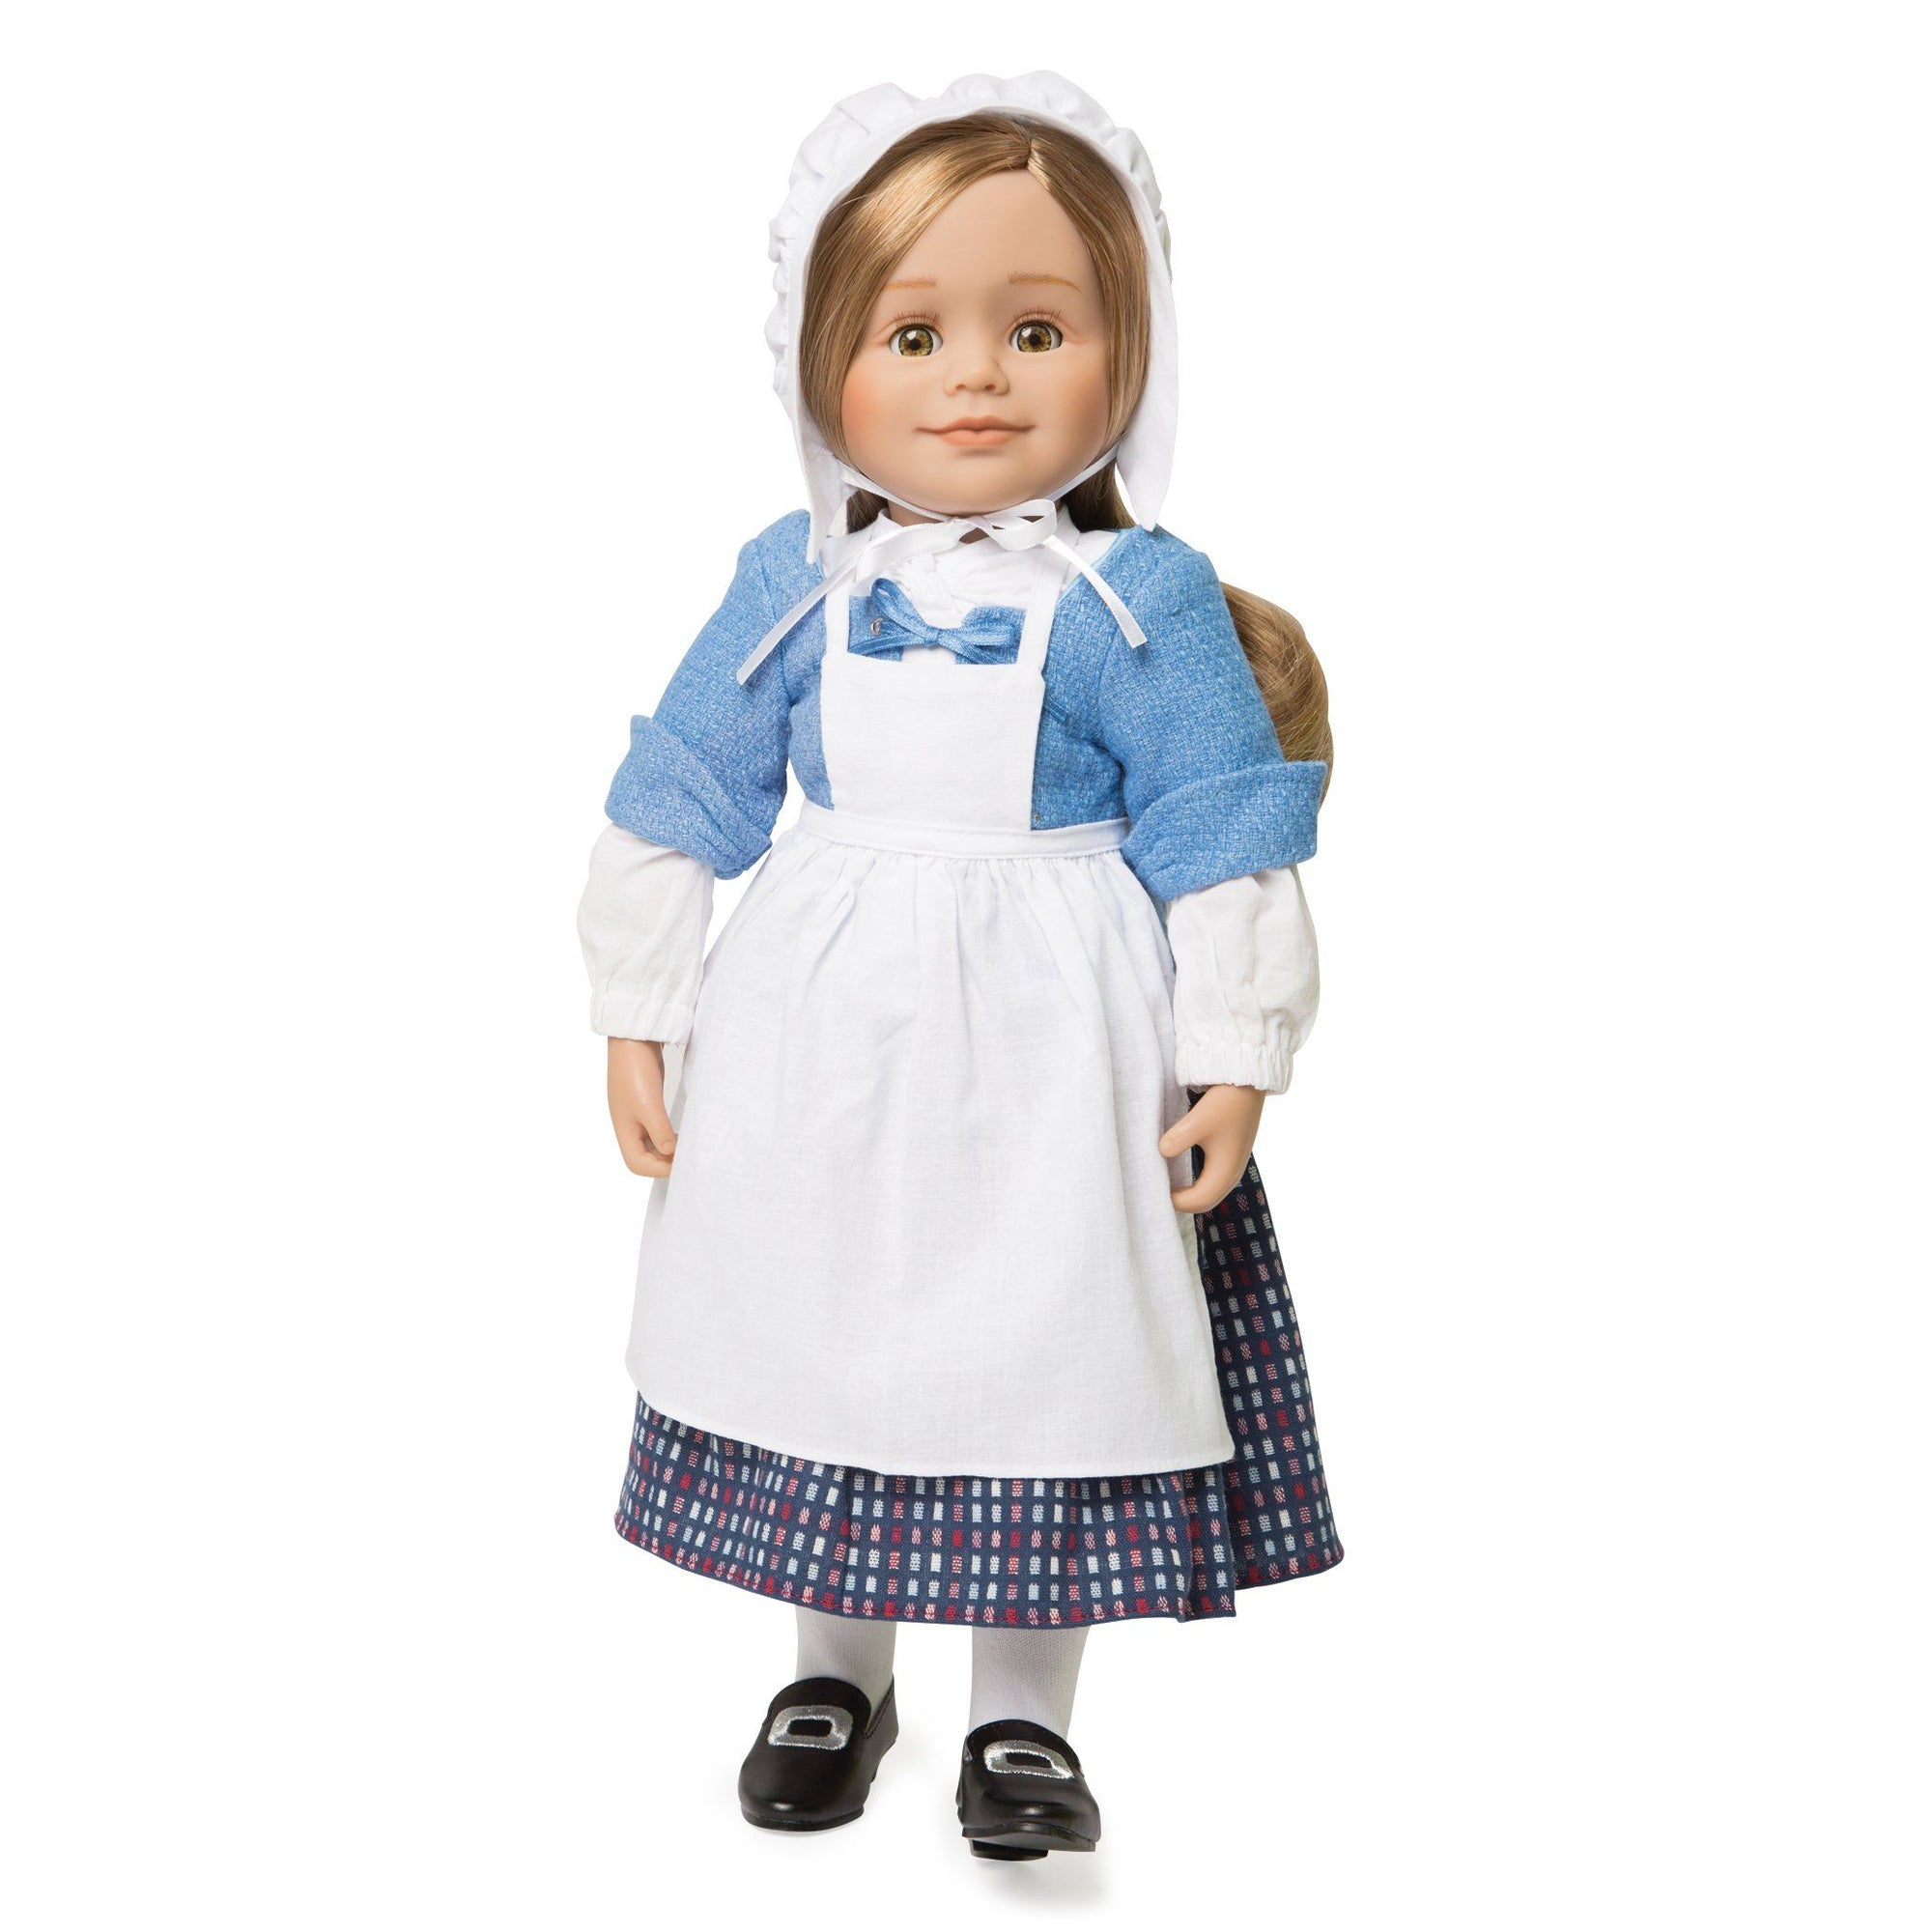 Pioneer Quebecoise 8-piece heritage outfit white chemise, blue mantelet, white scarf, plaid skirt, white tights, apron and bonnet with black buckle shoes fits all 18 inch dolls.